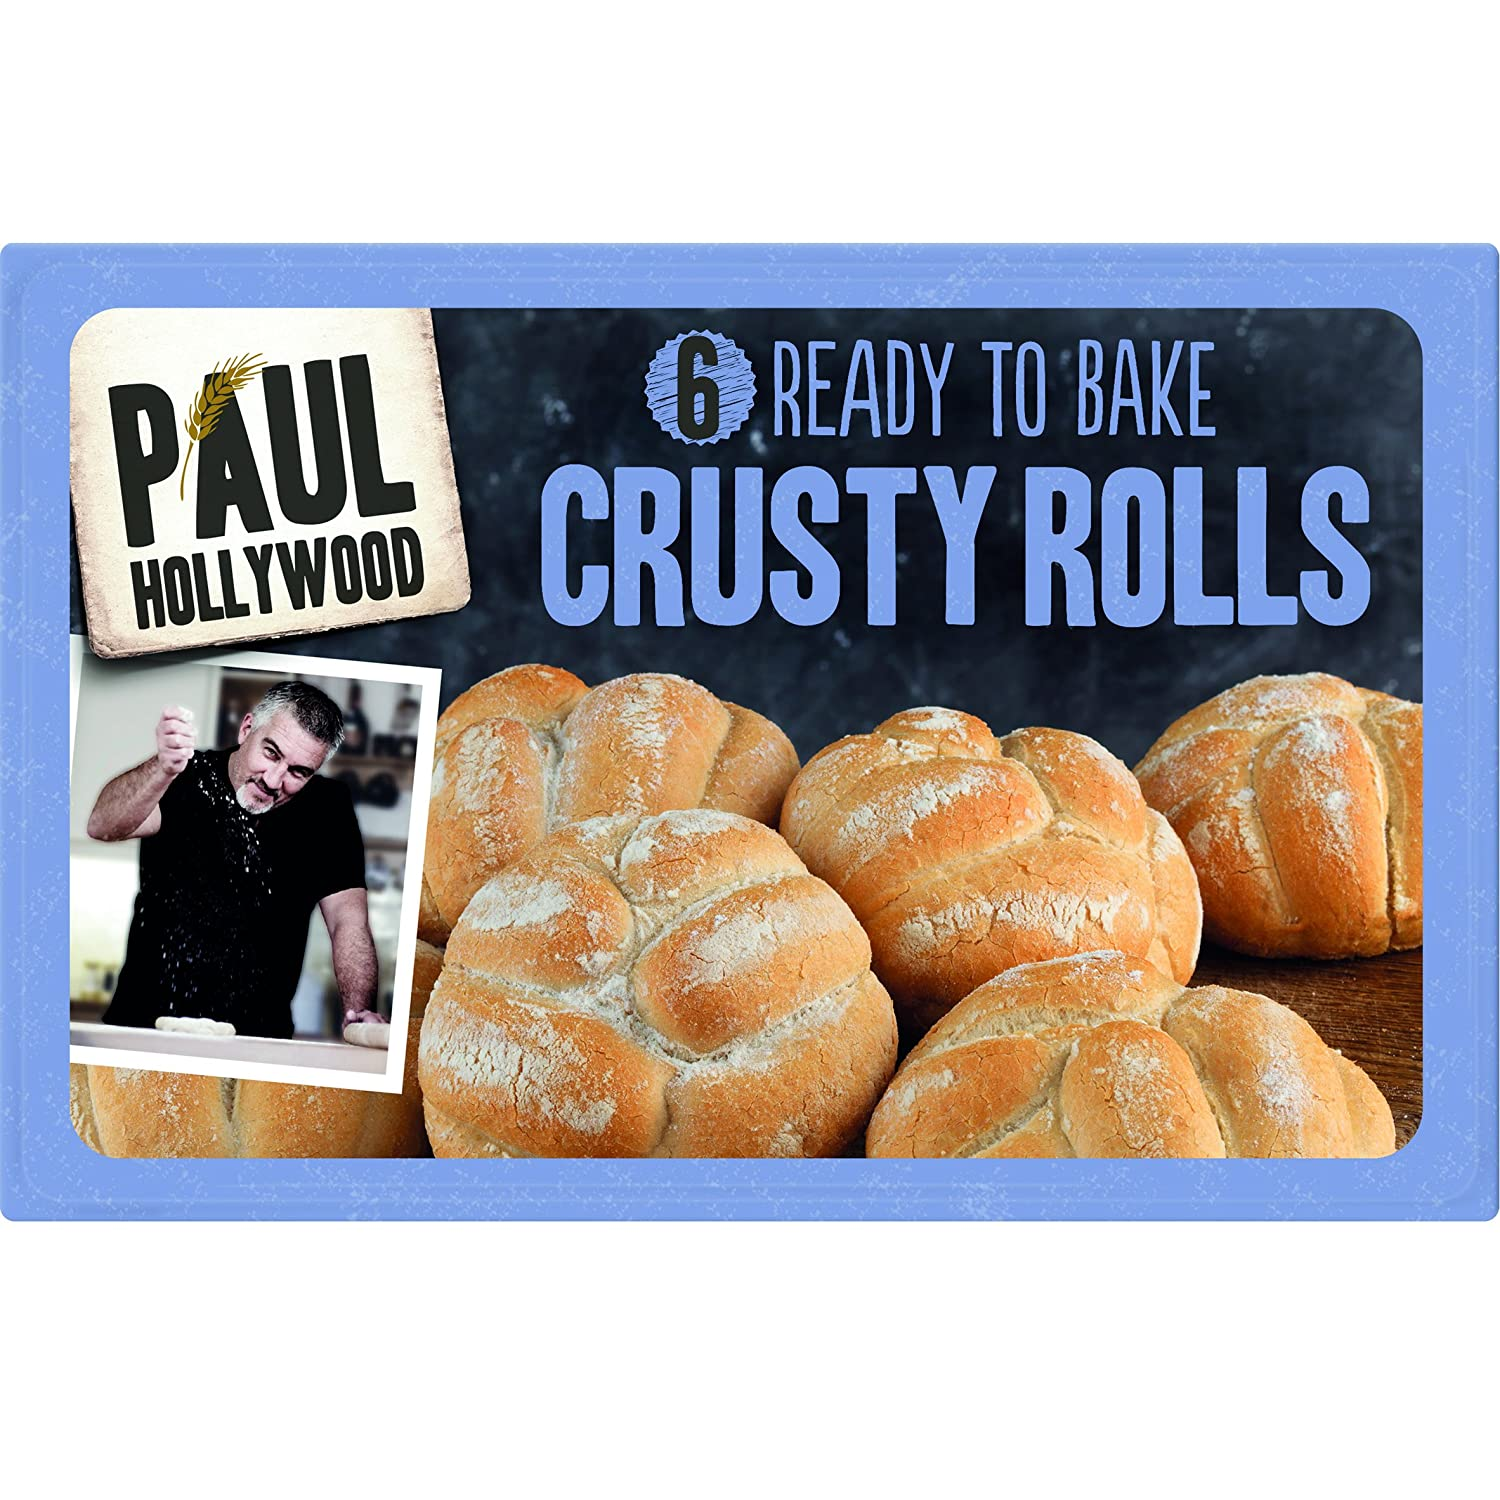 Paul Hollywood 6 Ready To Bake White Crusty Rolls Amazoncouk